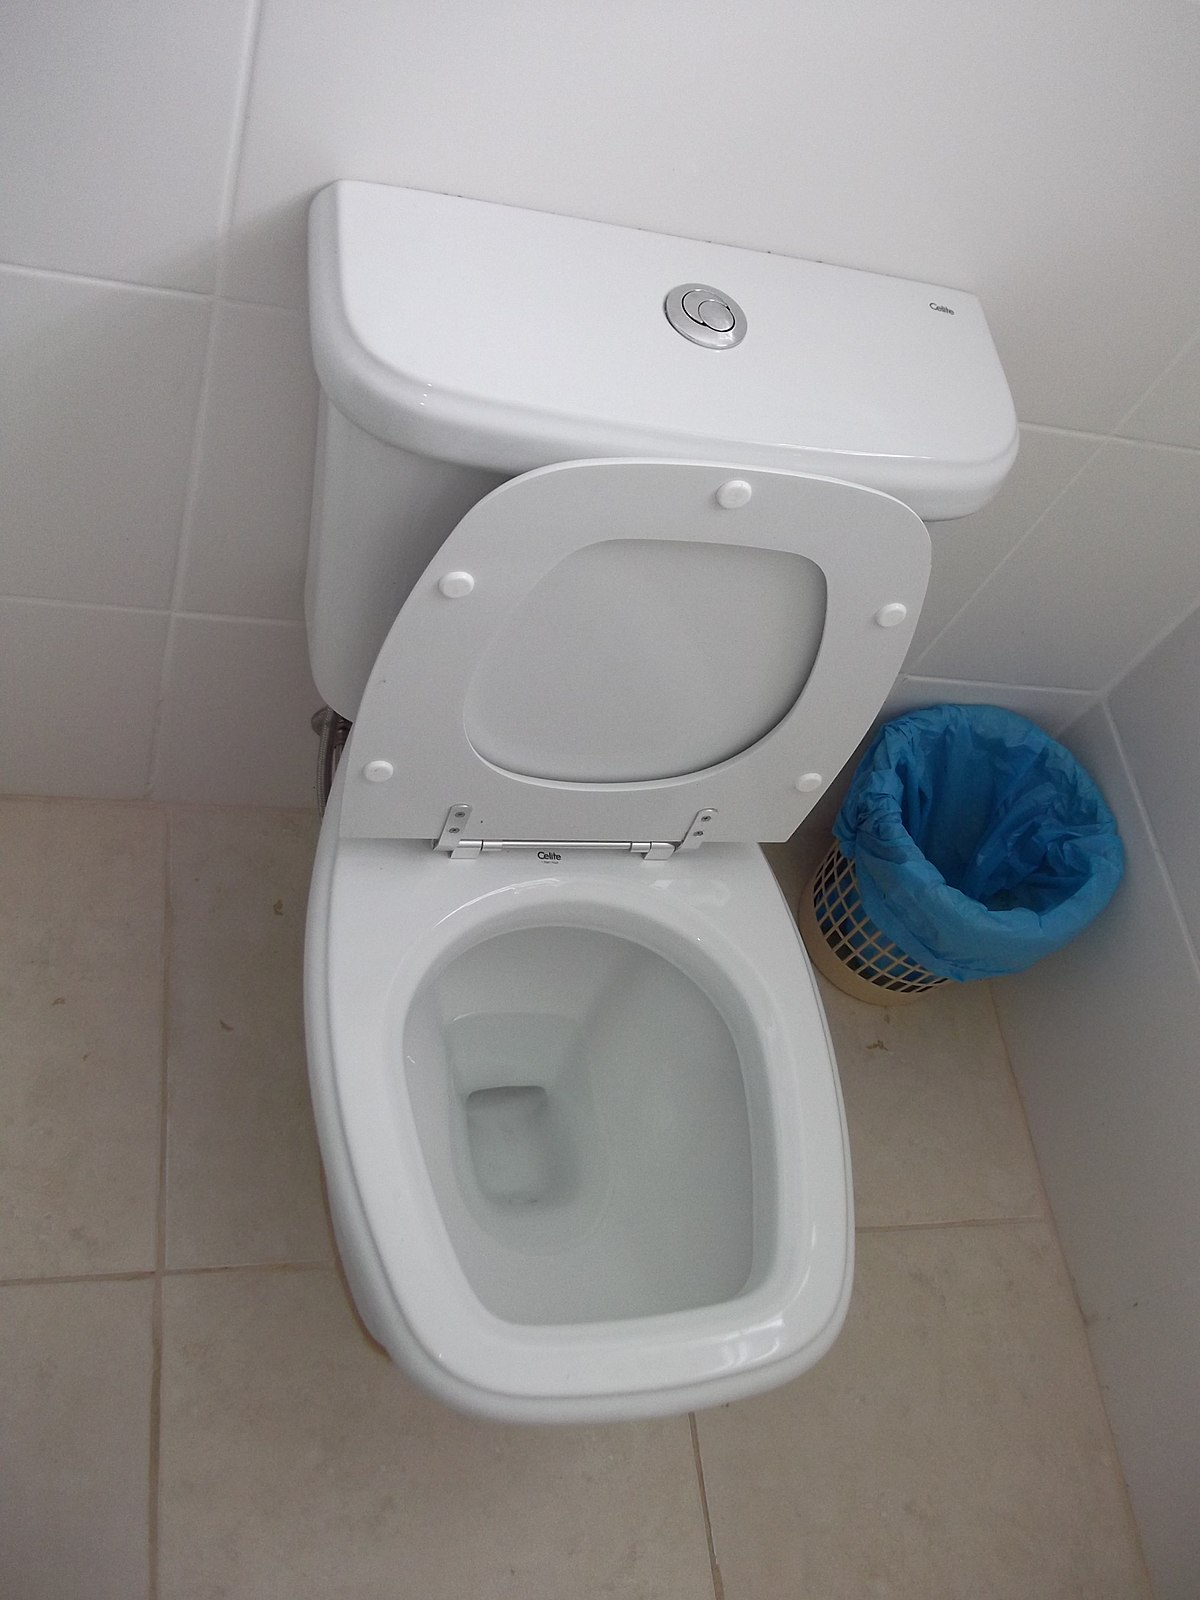 What does the toilet look like